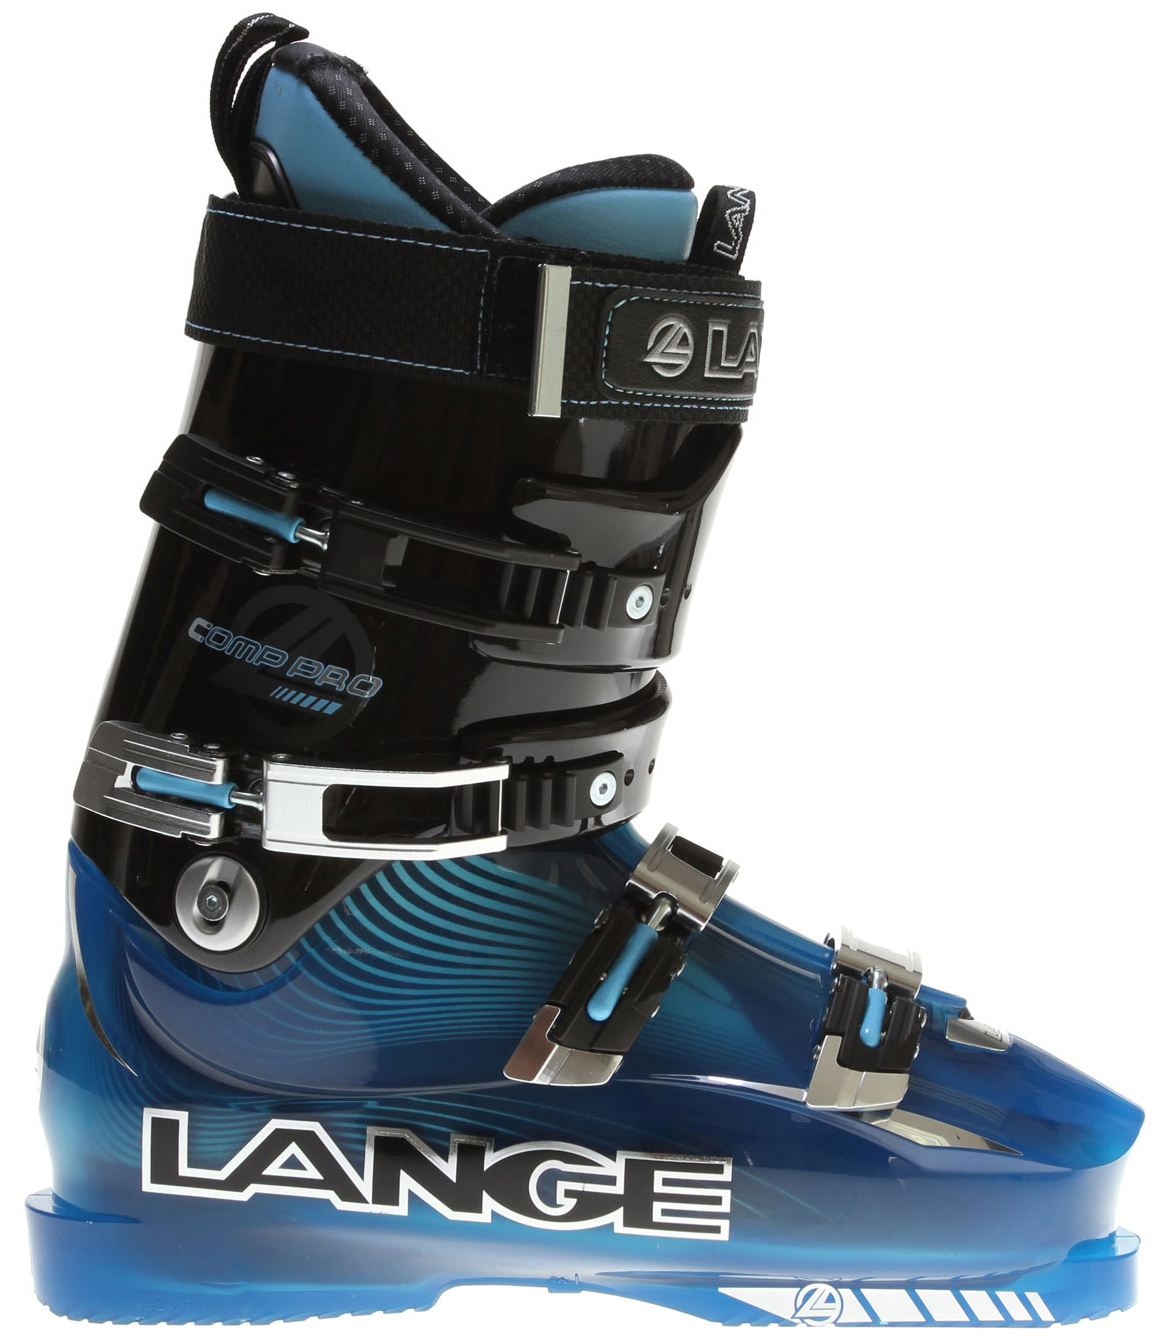 Ski The Lange Comp Pro ski boot is a slightly softer version of the Super Comp. The flex range of the Comp Pro is much shorter and quicker to engage which puts more energy in to the ski and allows the skier to pressure the front of the ski with more aggression. The design of the lower shell includes a near vertical medial wall which allows the foot to sit closer to the inside edge. Complete with a Custom Fit liner with a Neoprene toe box and removable rear spoiler the Comp Pro is designed for high performance skiing.Key Features of the Lange Comp Pro Ski Boots: Color: Trans Blue/ Black Flex: 120 Last: 97mm Shell: RL 12 Size: Half Size Only 22.5-30.5 4 Micro WC 2 EZ Open Buckles 40mm Power Strap Custom Fit Liner Polyether Material Racing Tongue Rigid Boot Board Slalom Sensor Sole T-nut Catch - $388.95